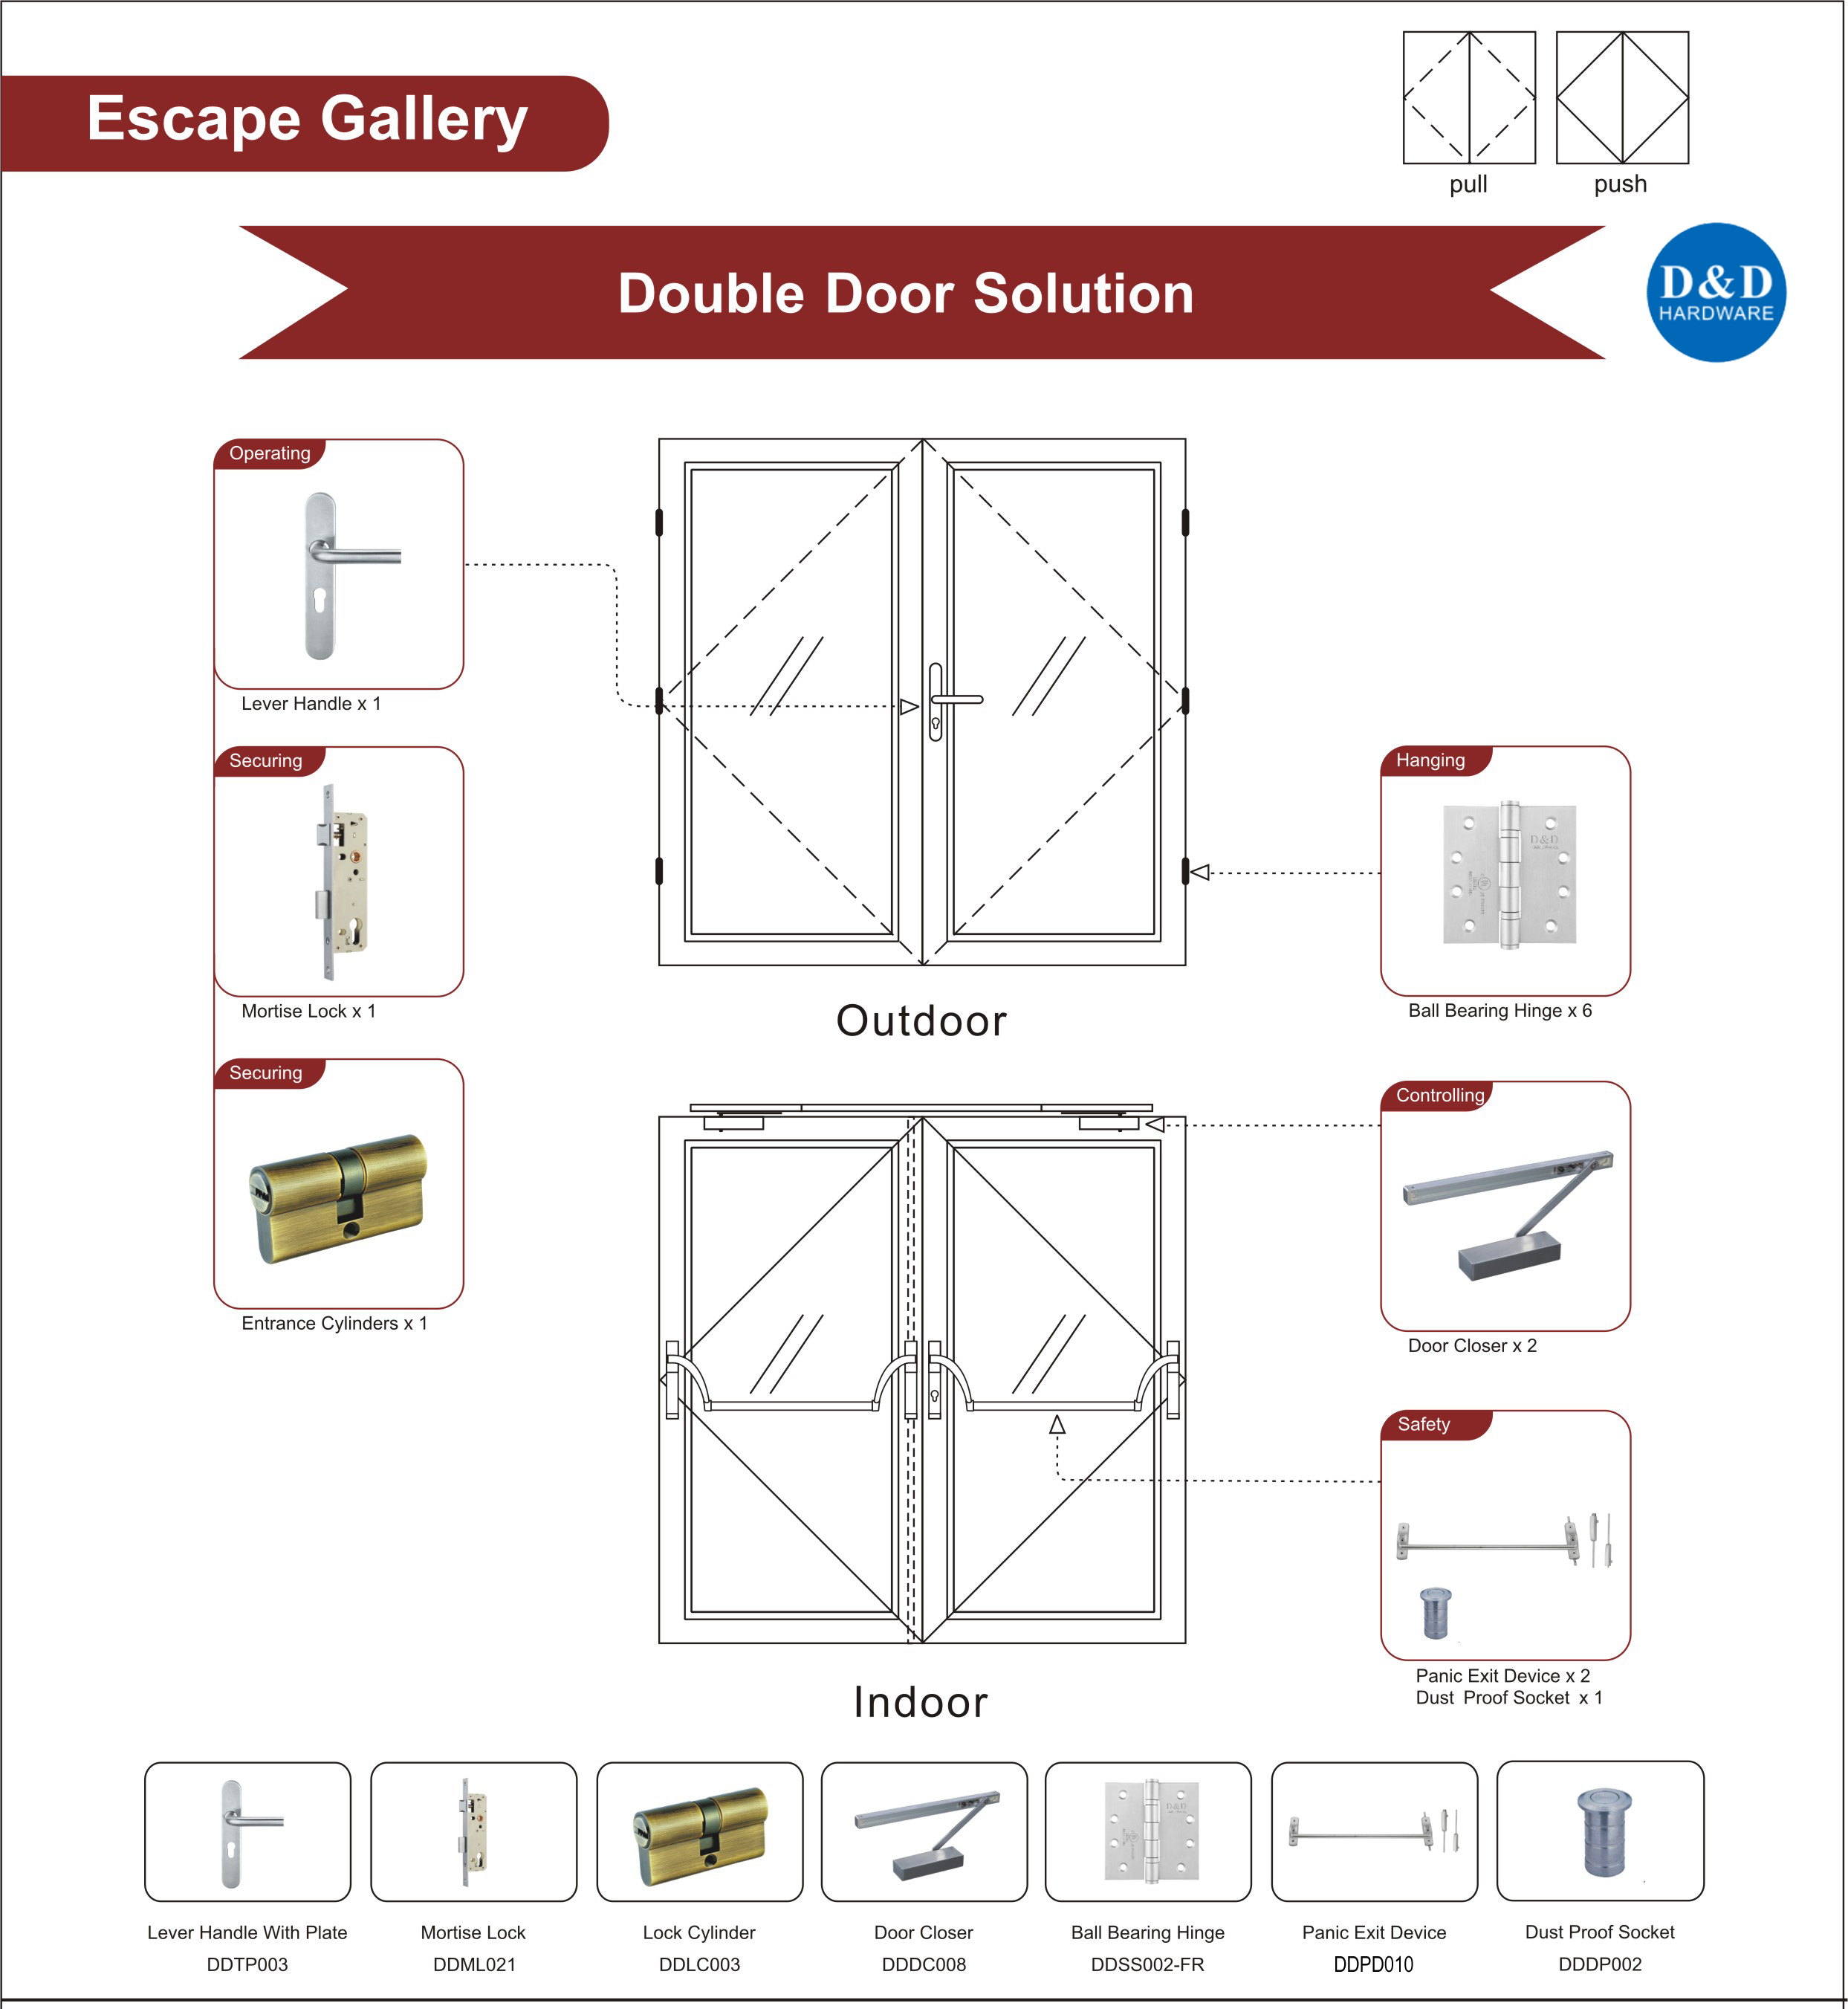 Steel Fire Rated Glass Door Ironmongery for Escape Gallery Double Door